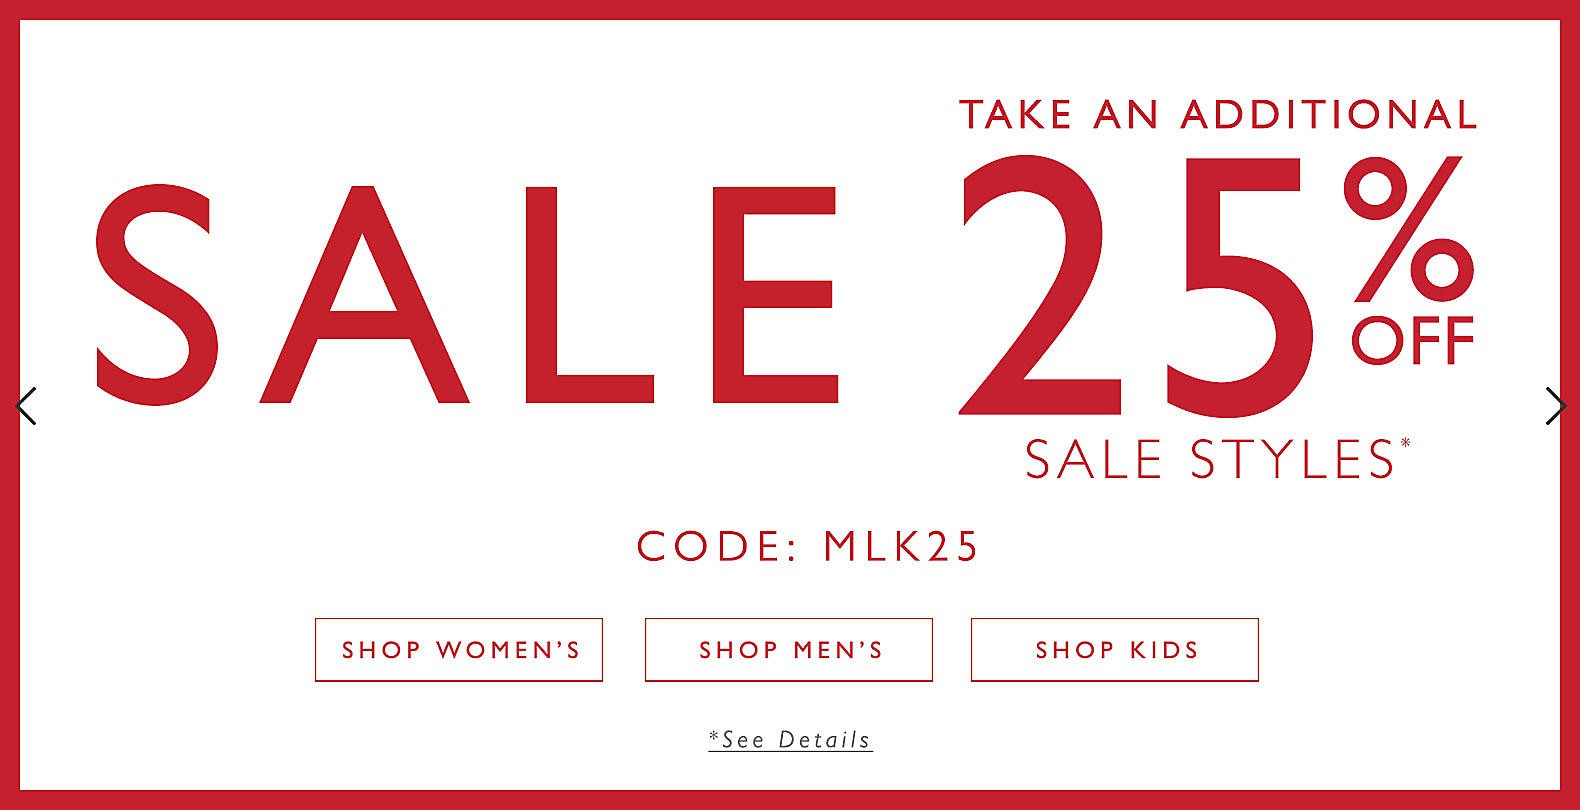 Bargain - Extra 25% OFF - Sale Styles @ Clarks